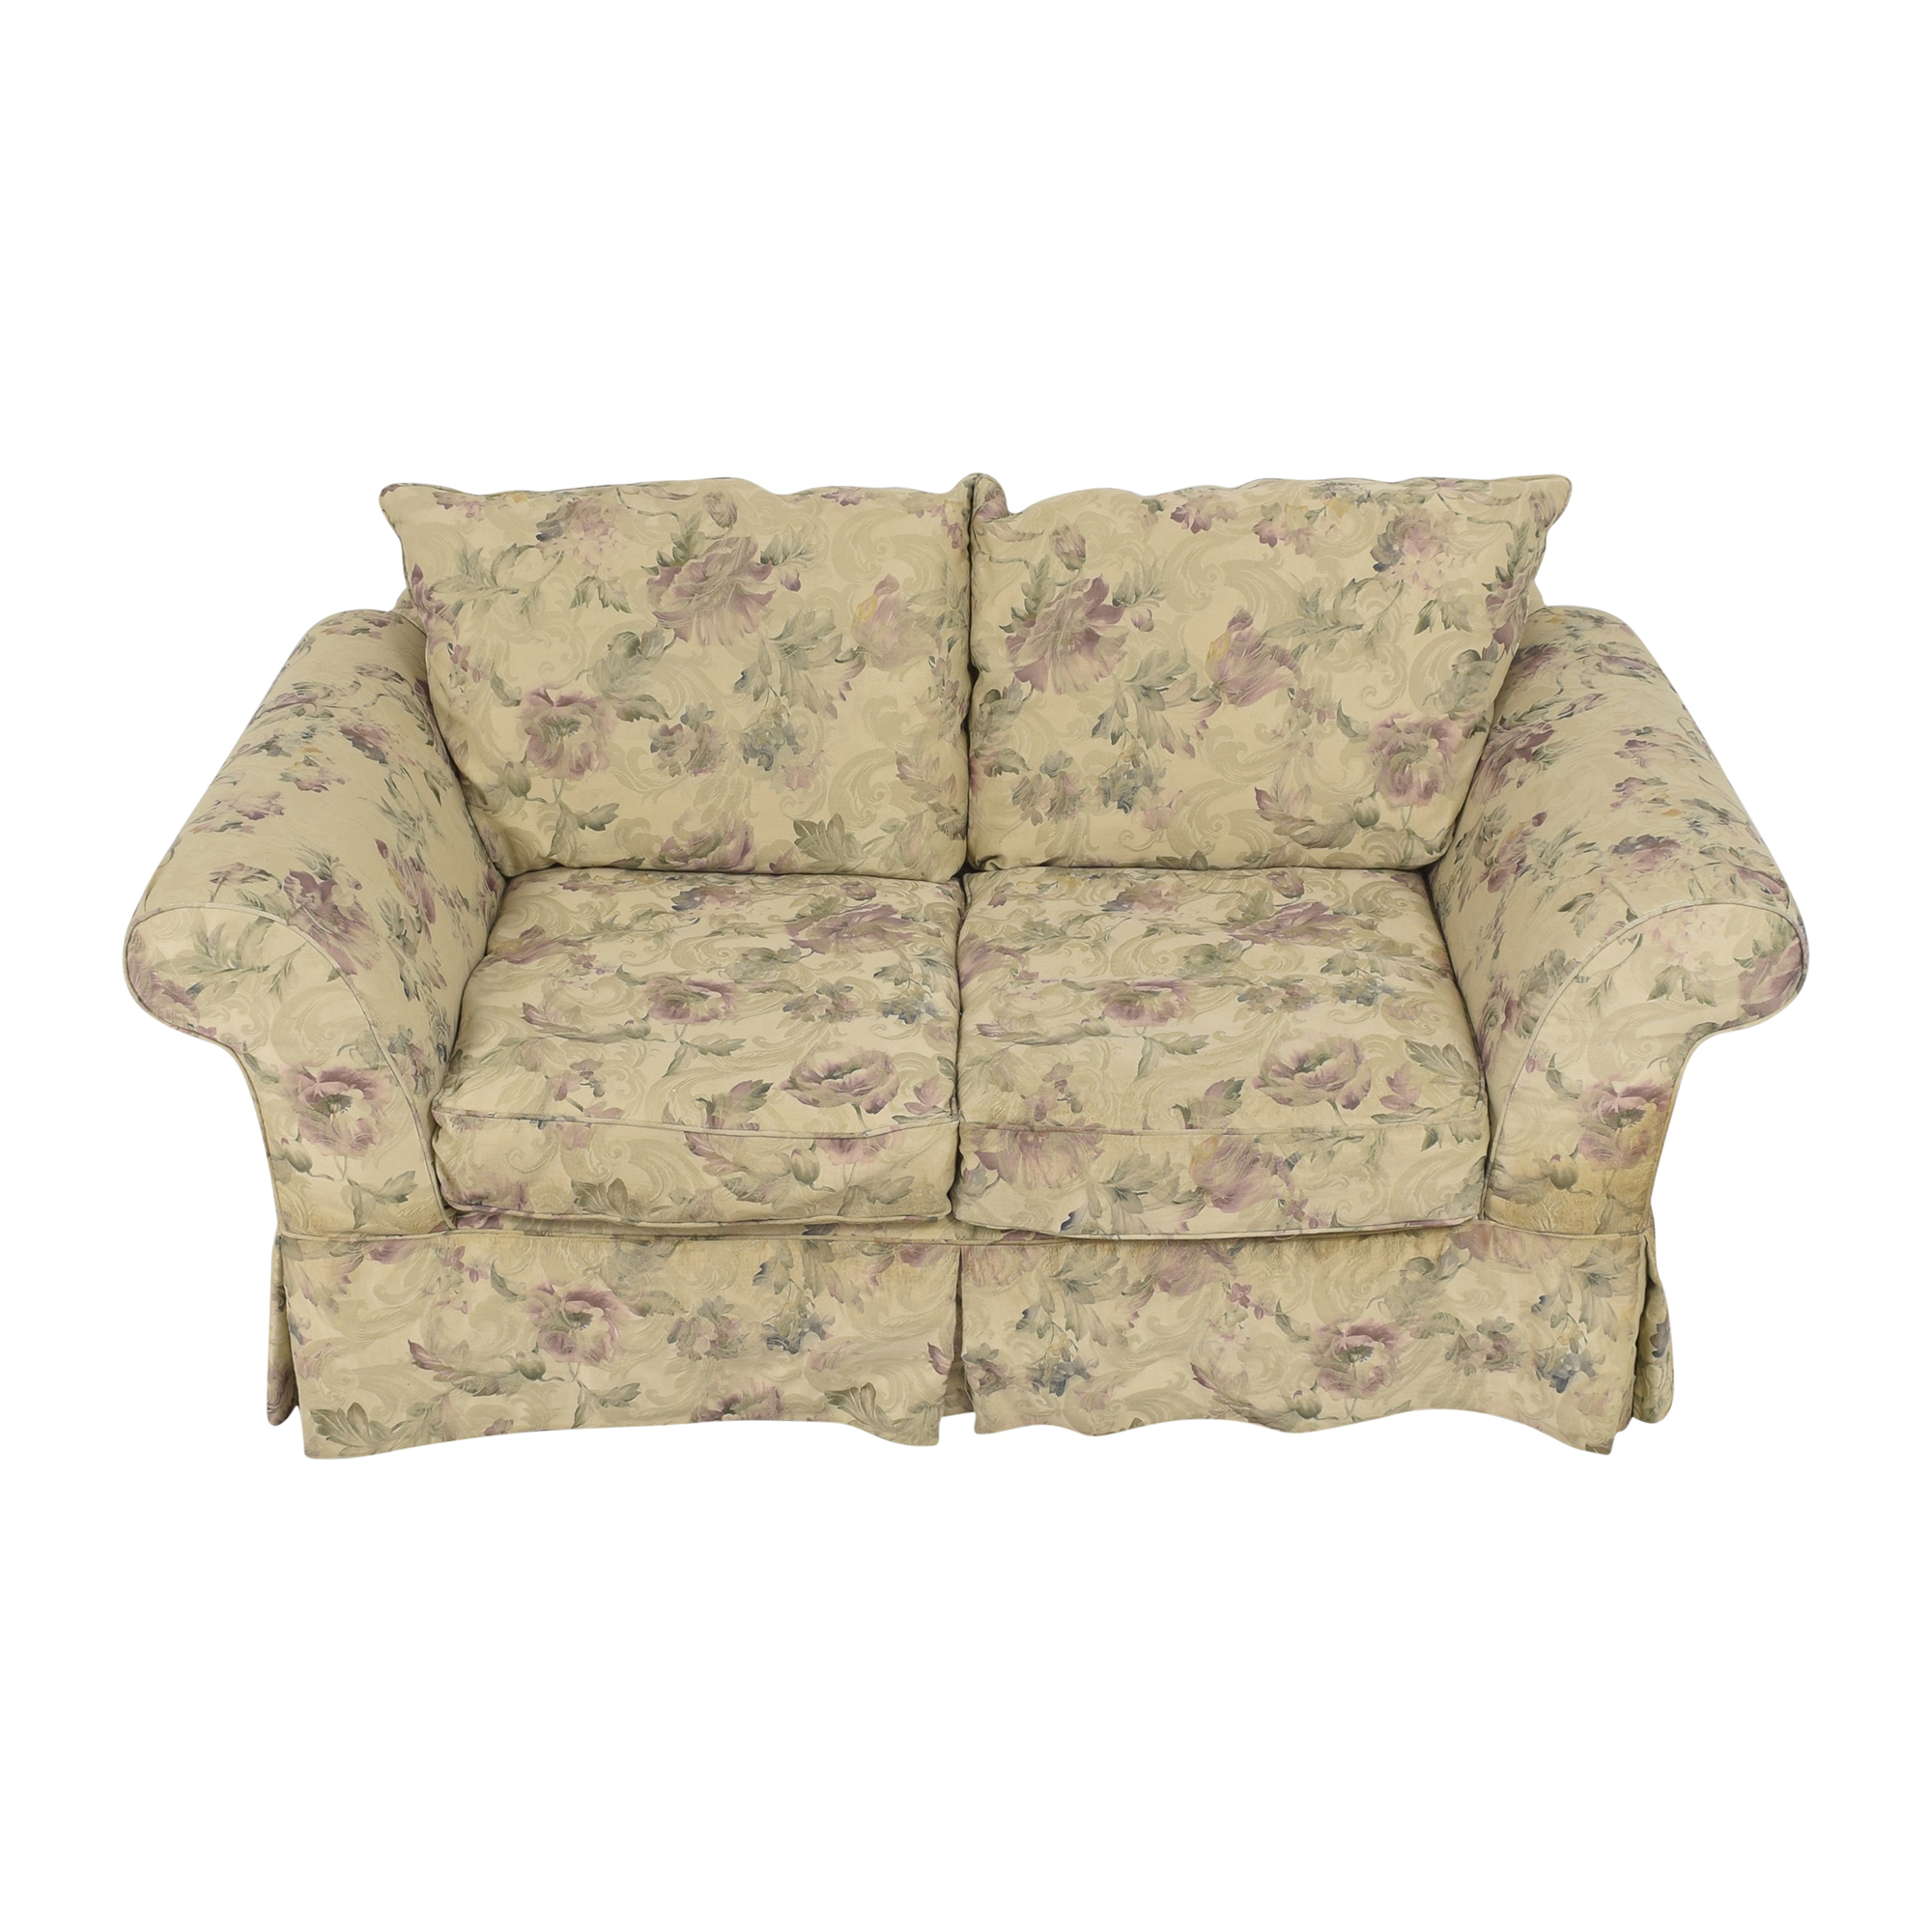 Domain Home Floral Two Seat Sofa / Sofas